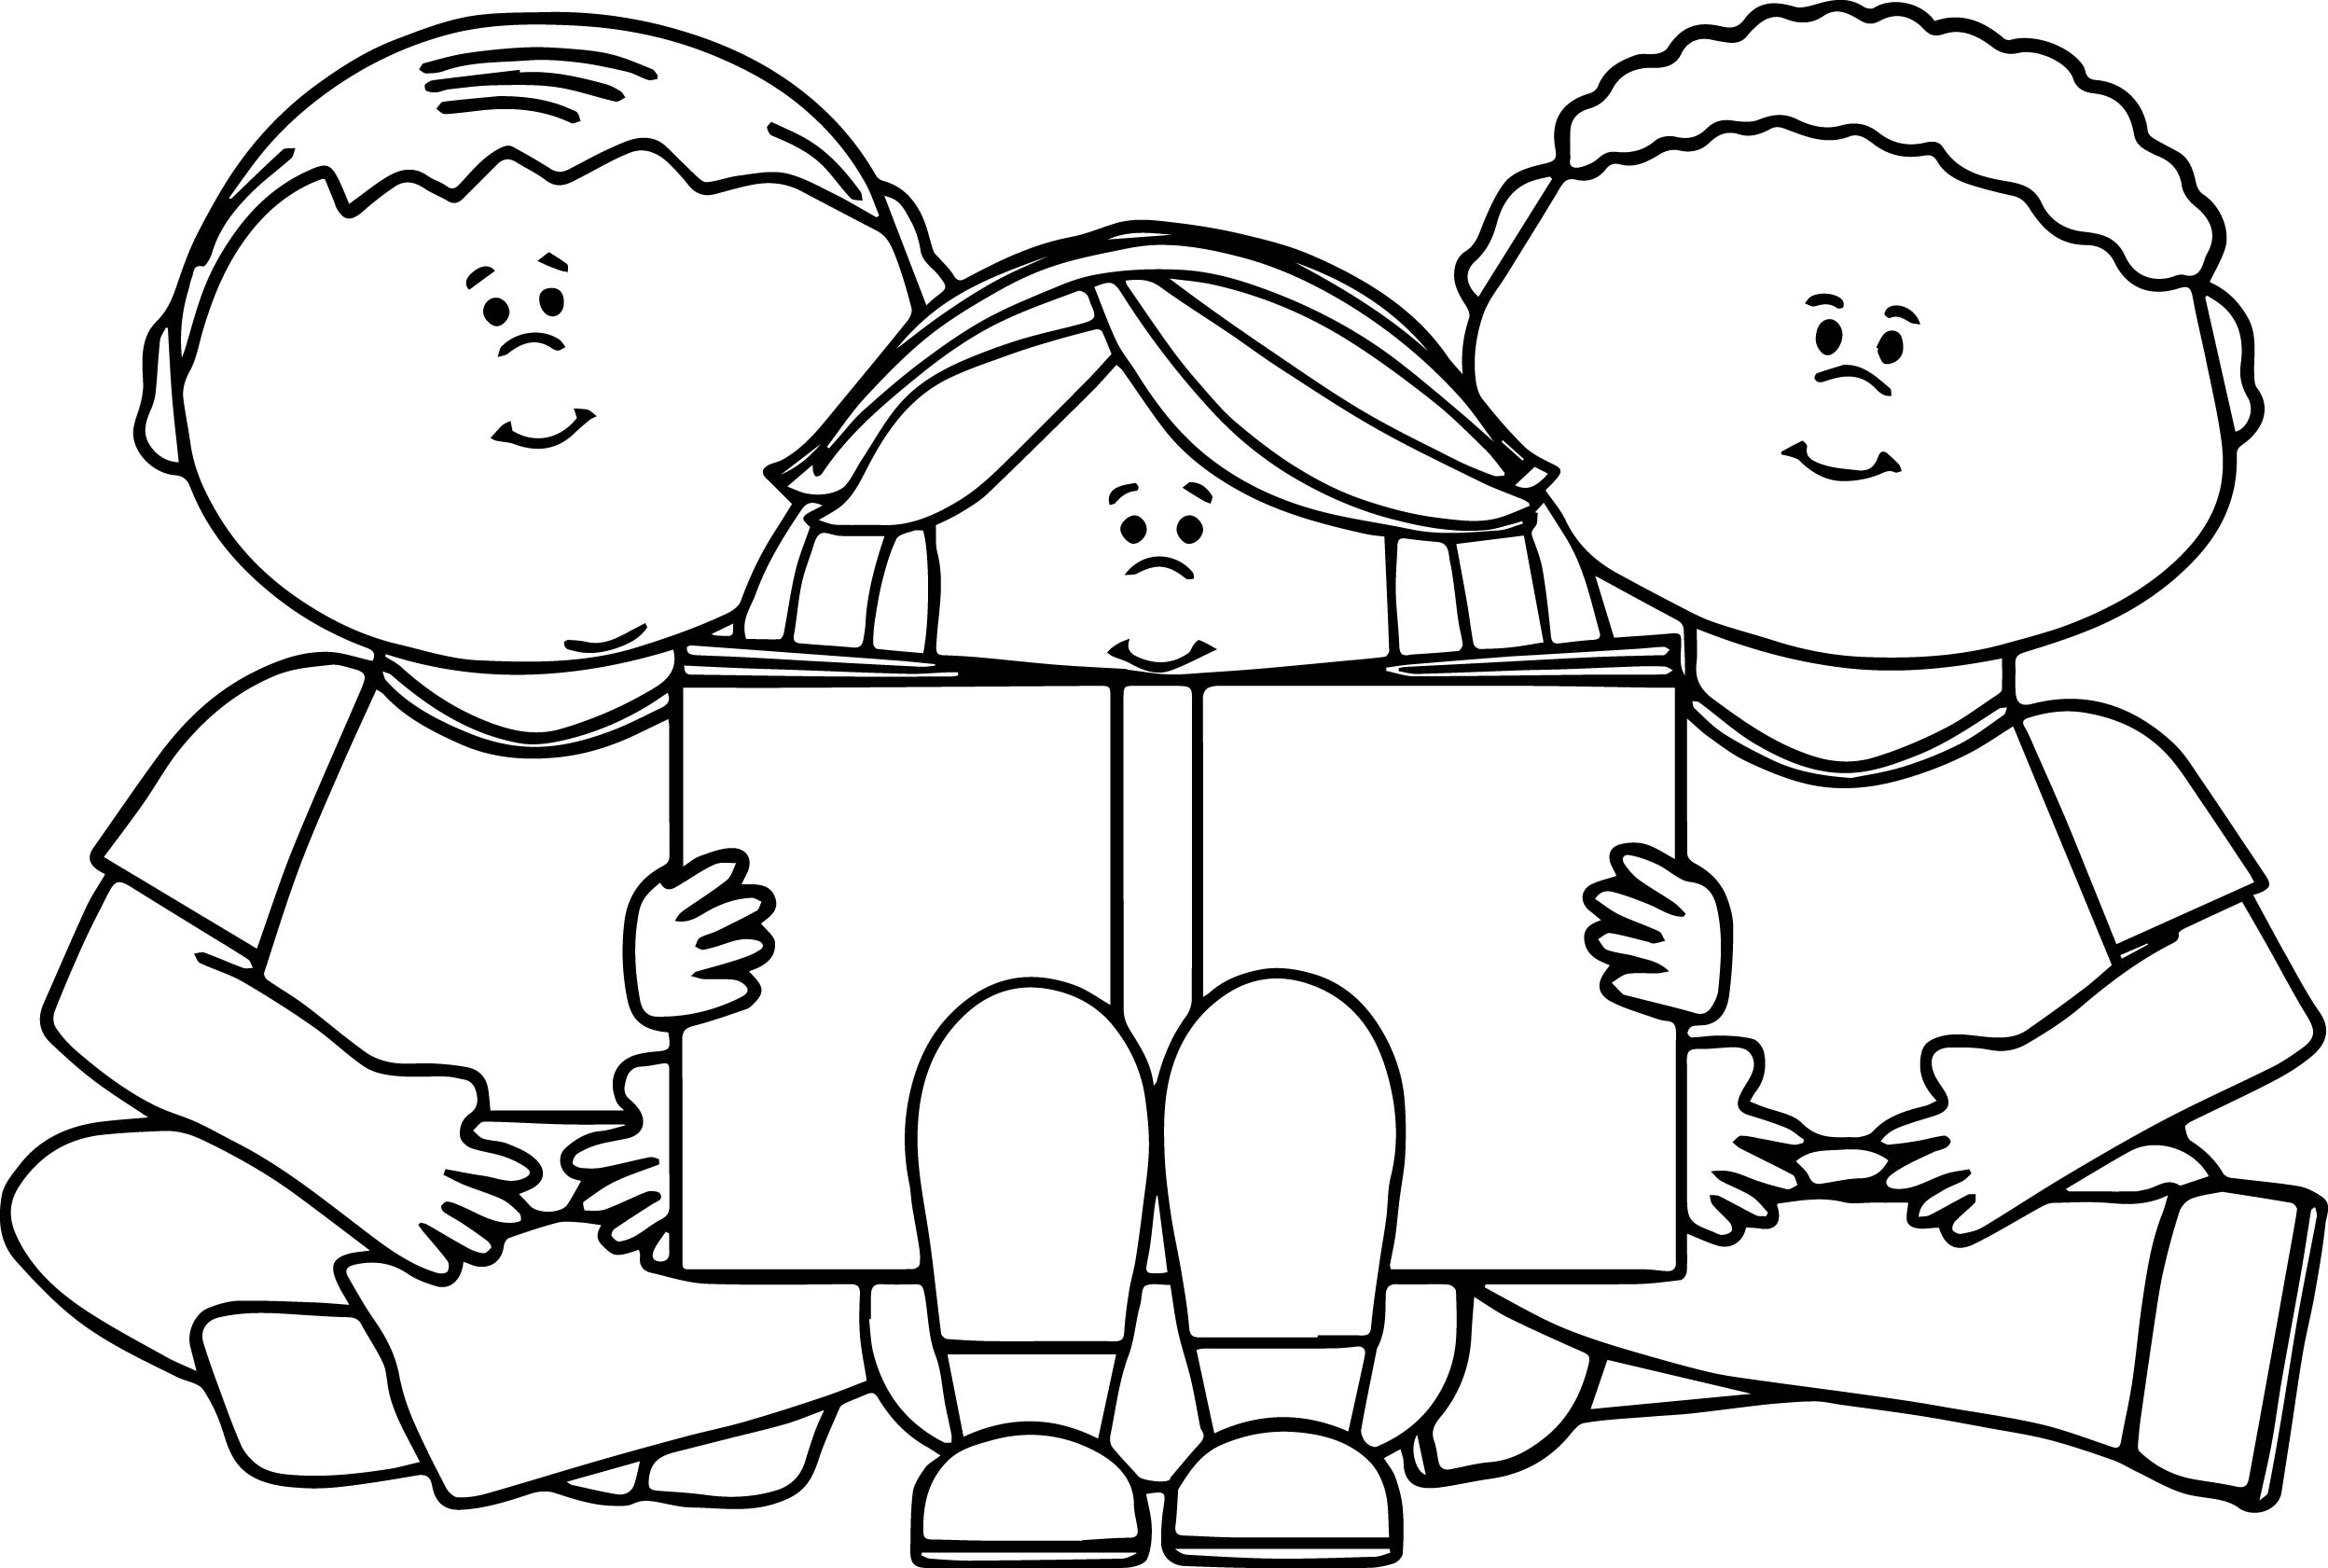 coloring pages from childrens books - photo#8